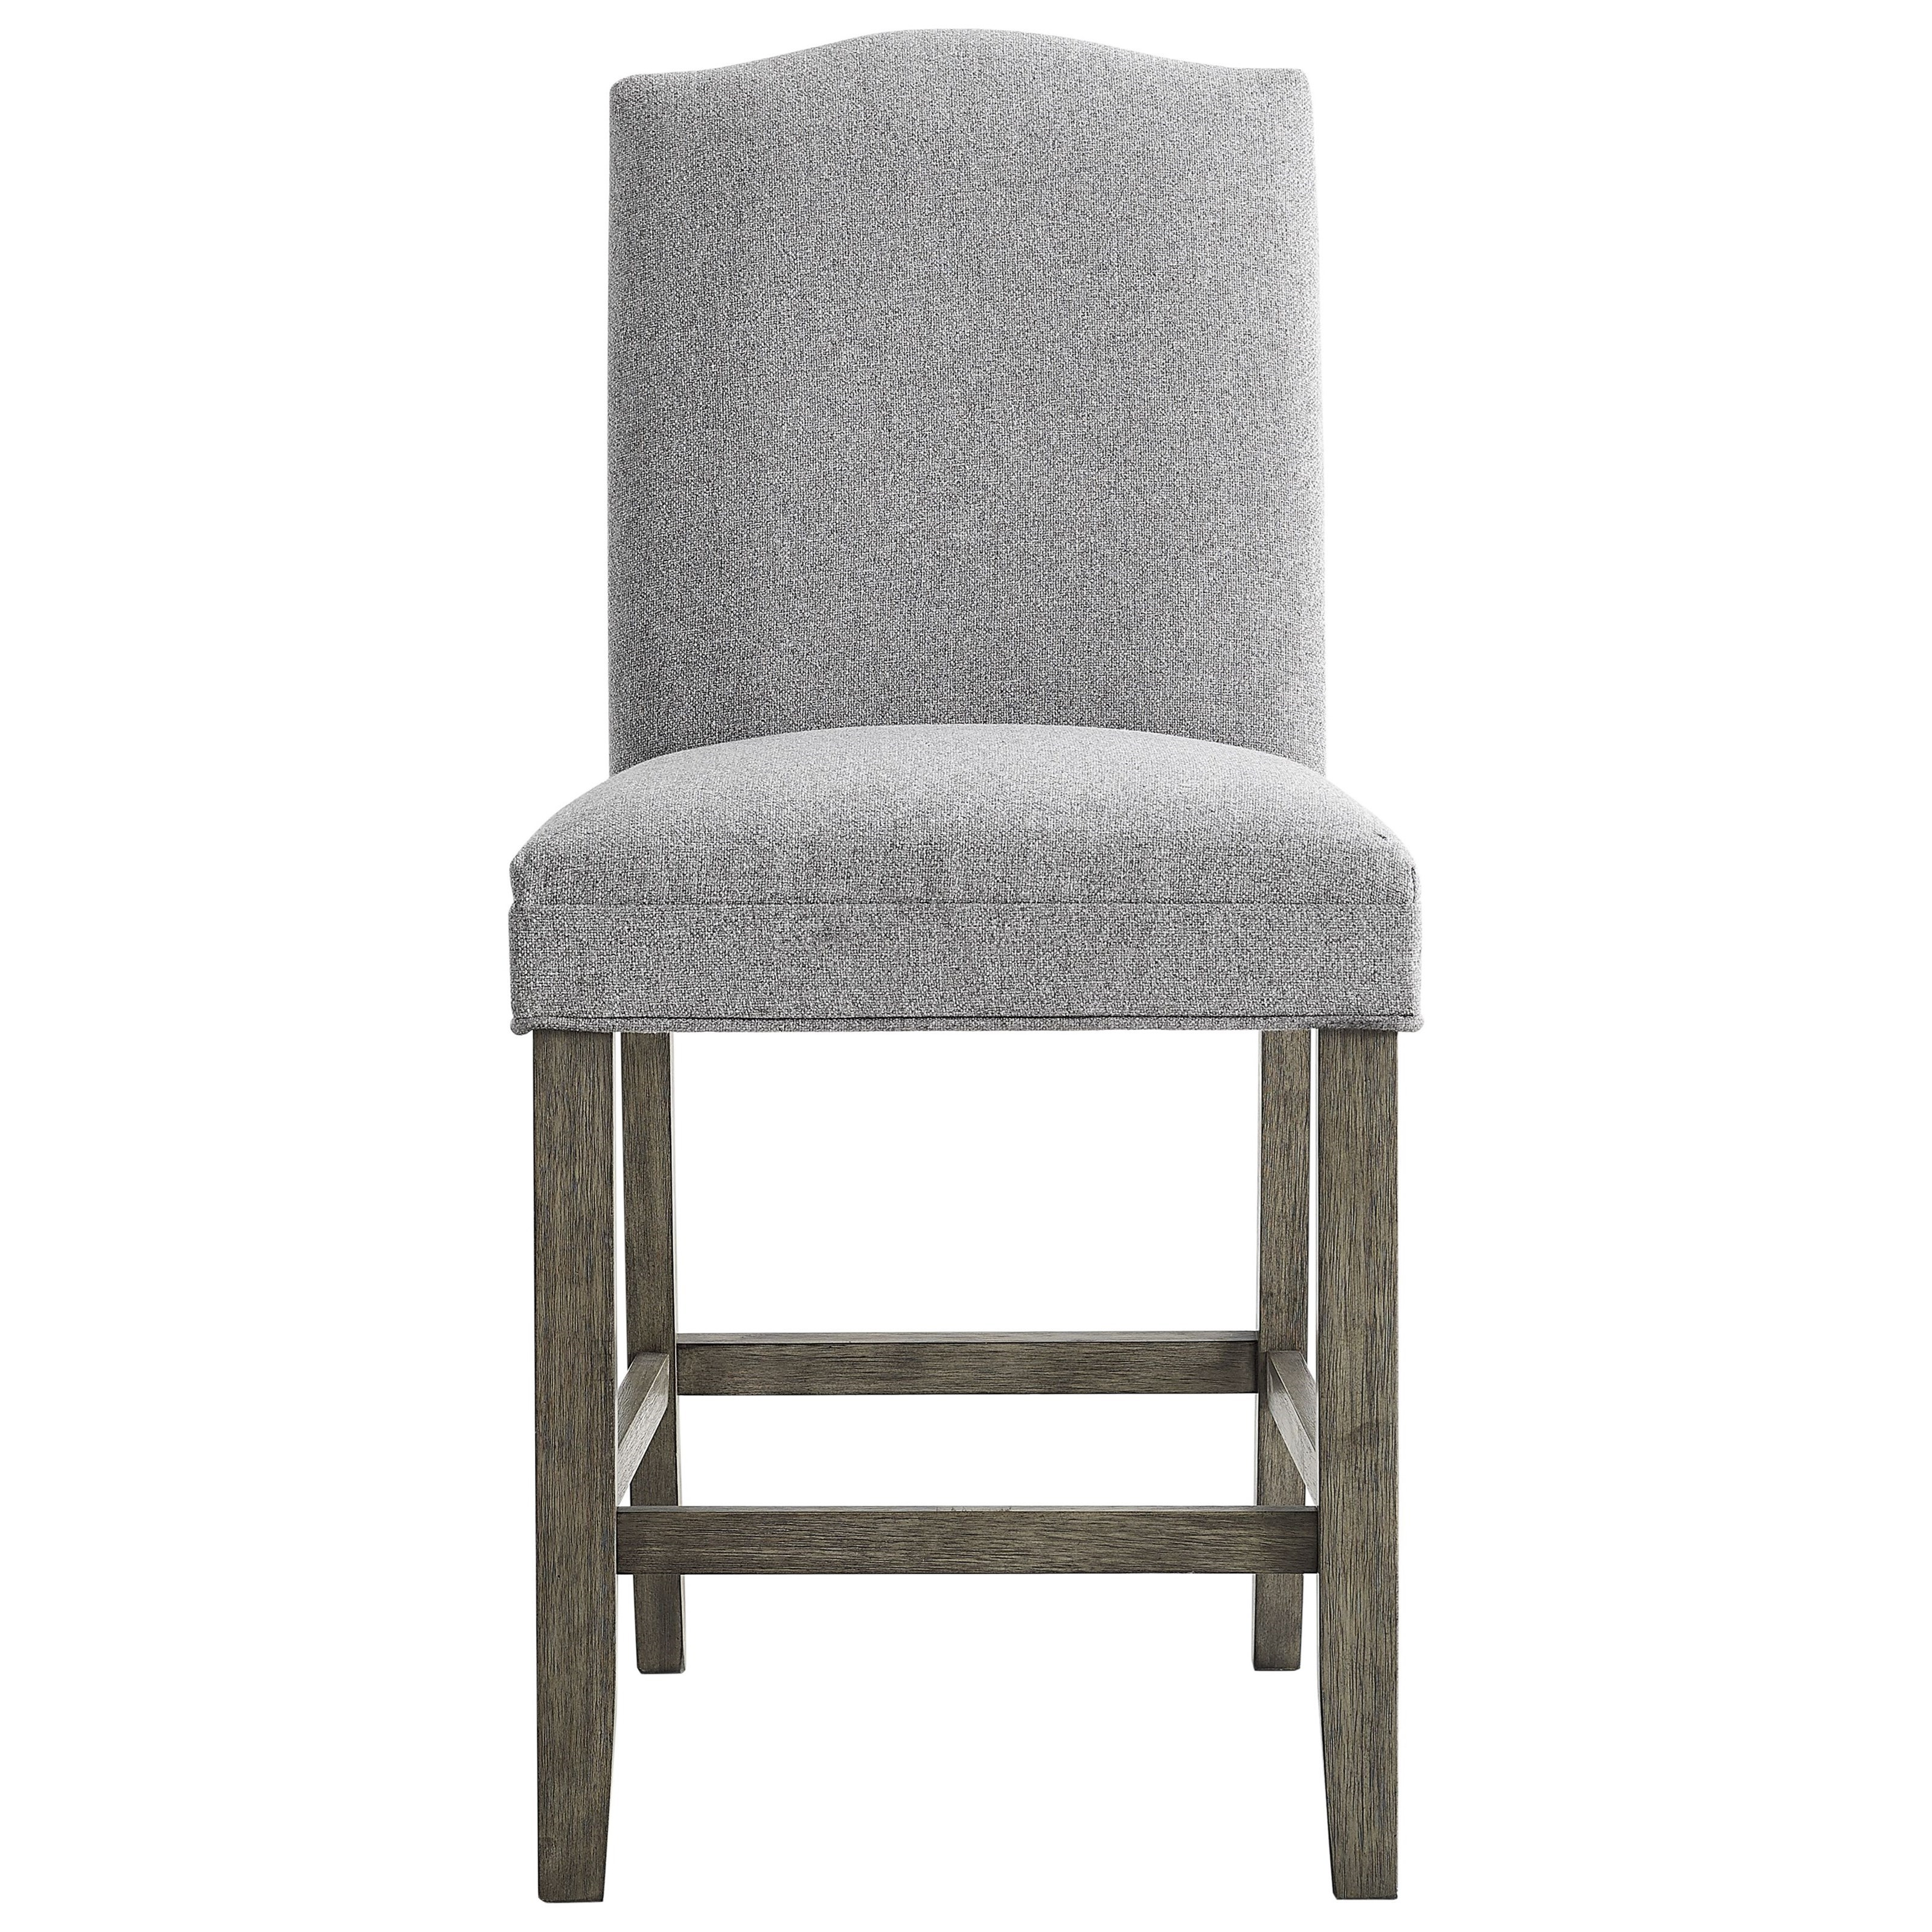 Steve Silver Grayson Gs640ccg Transitional Upholstered Counter Height Chair With Dunk Bright Furniture Bar Stools